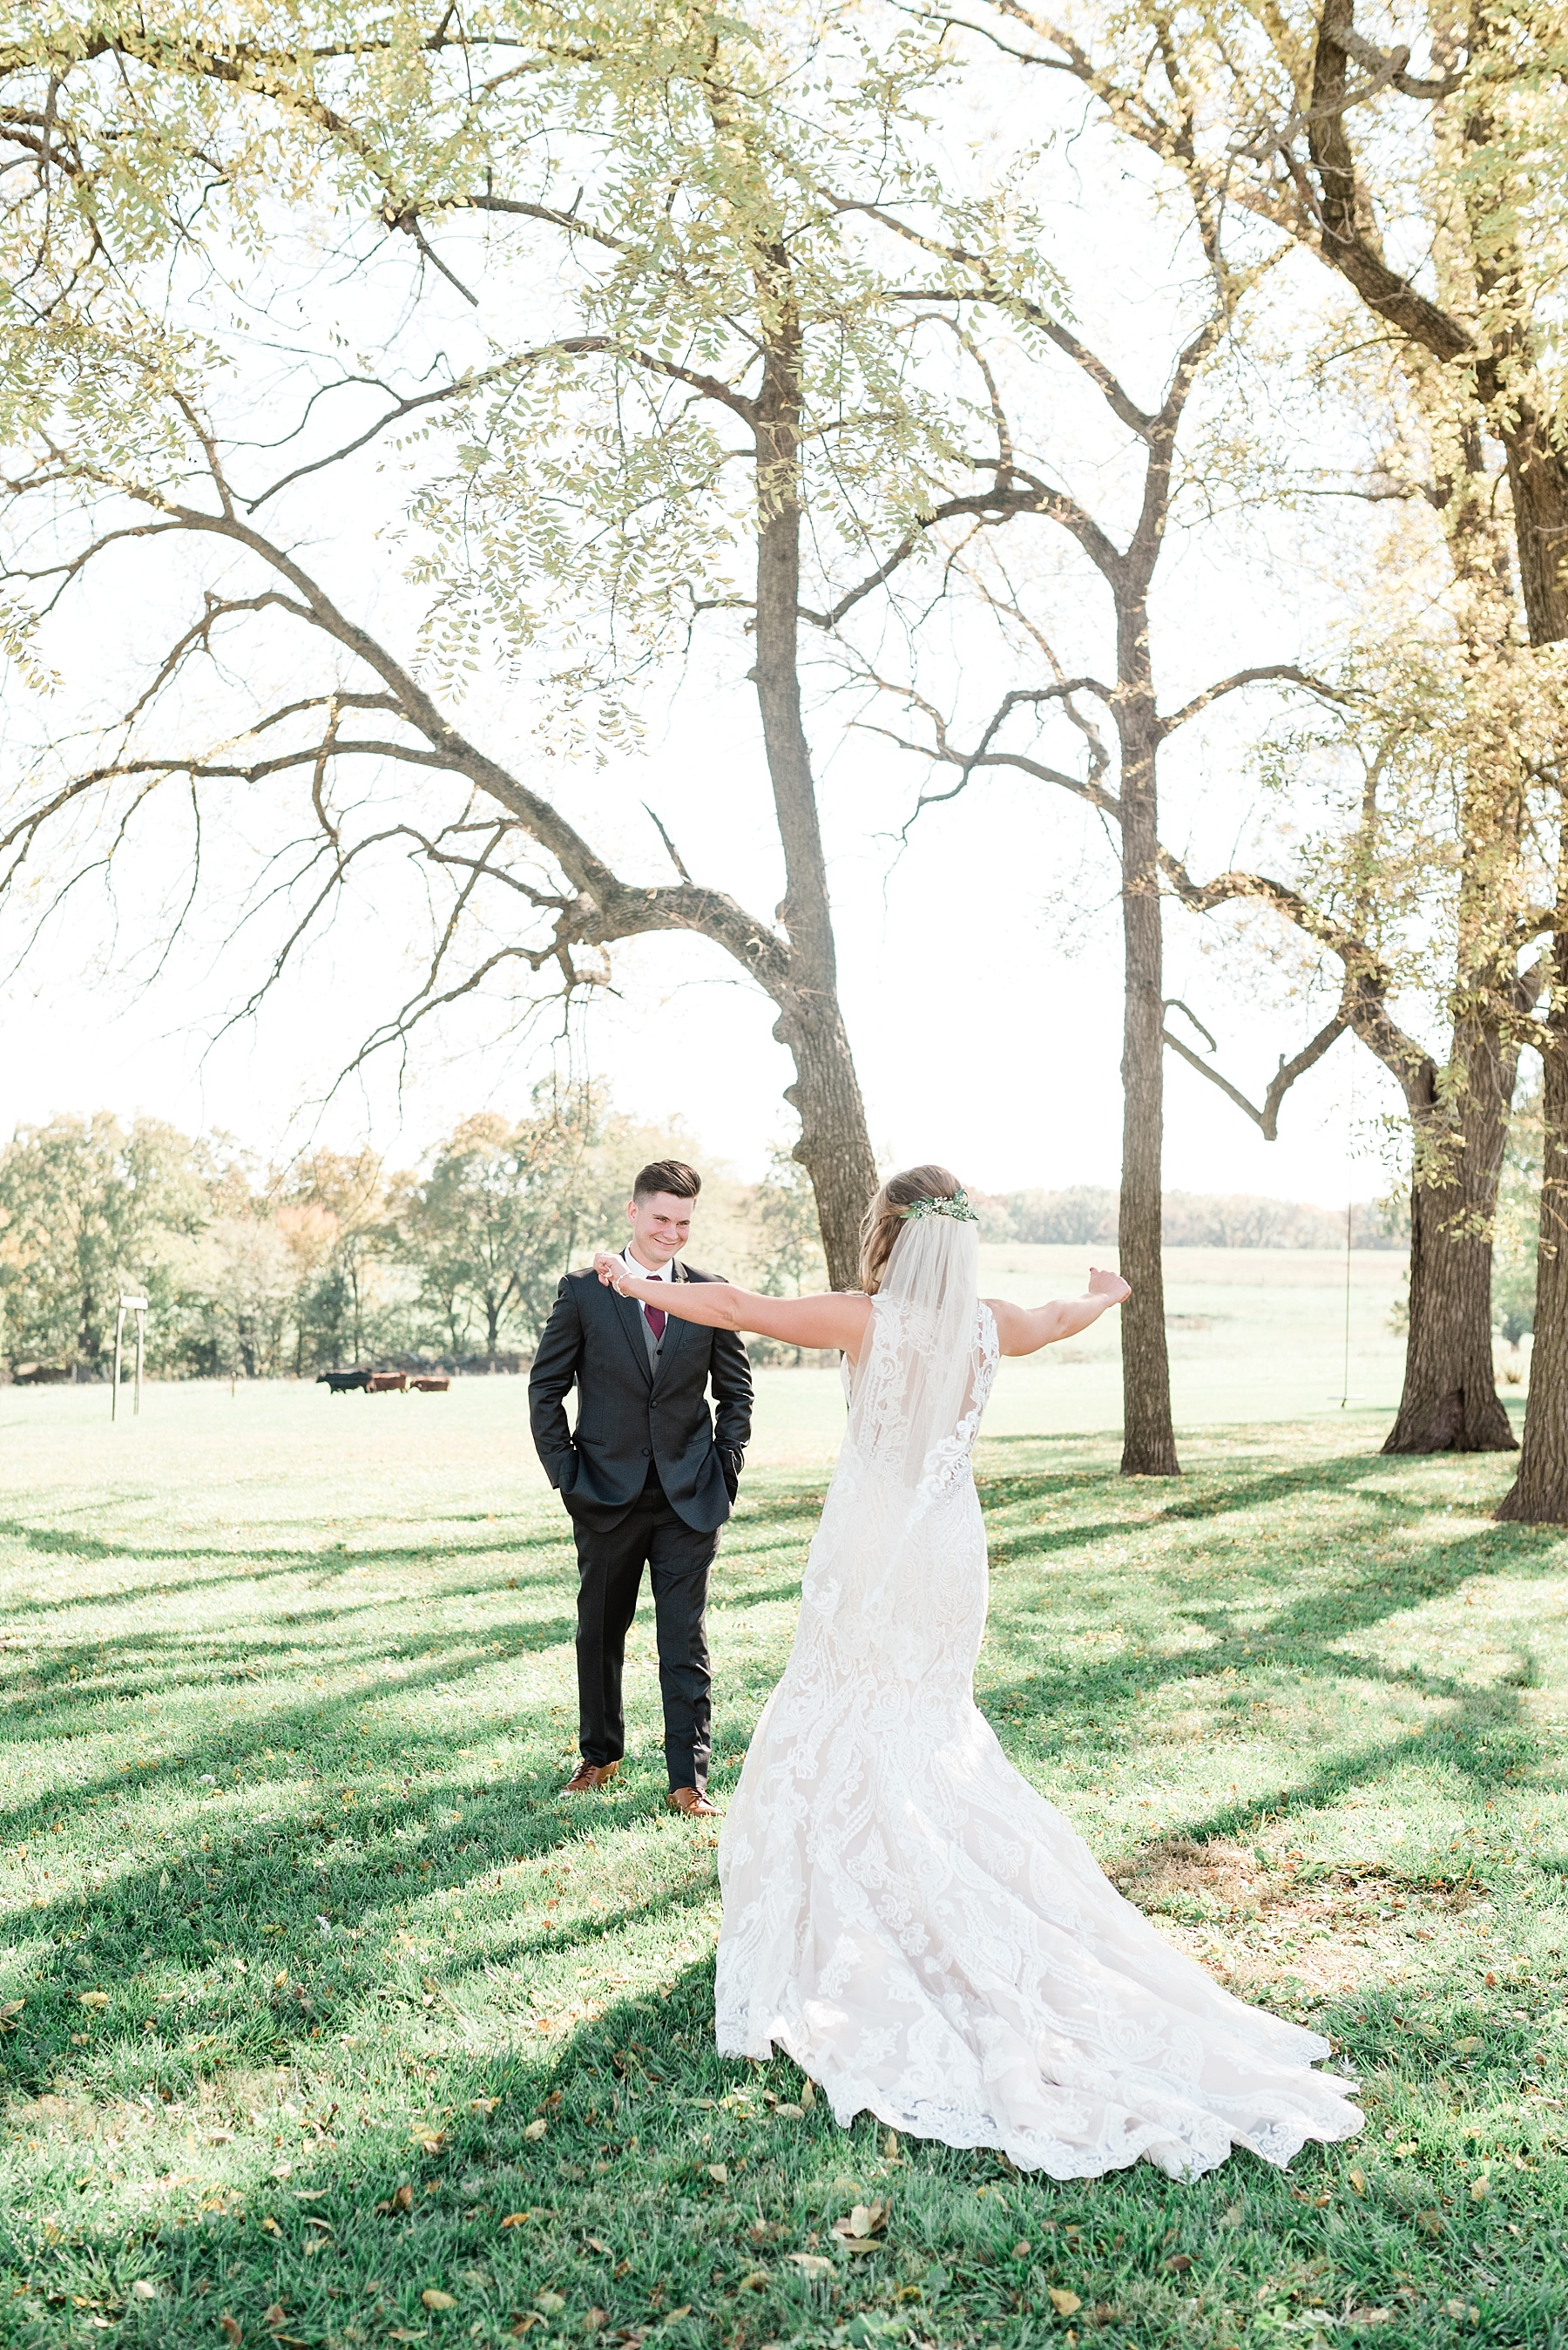 Golden Autumn Outdoor Wedding with Ivory, Bergundy, and Blush Color Palette at Blue Bell Farms  by Kelsi Kliethermes Photography_0064.jpg